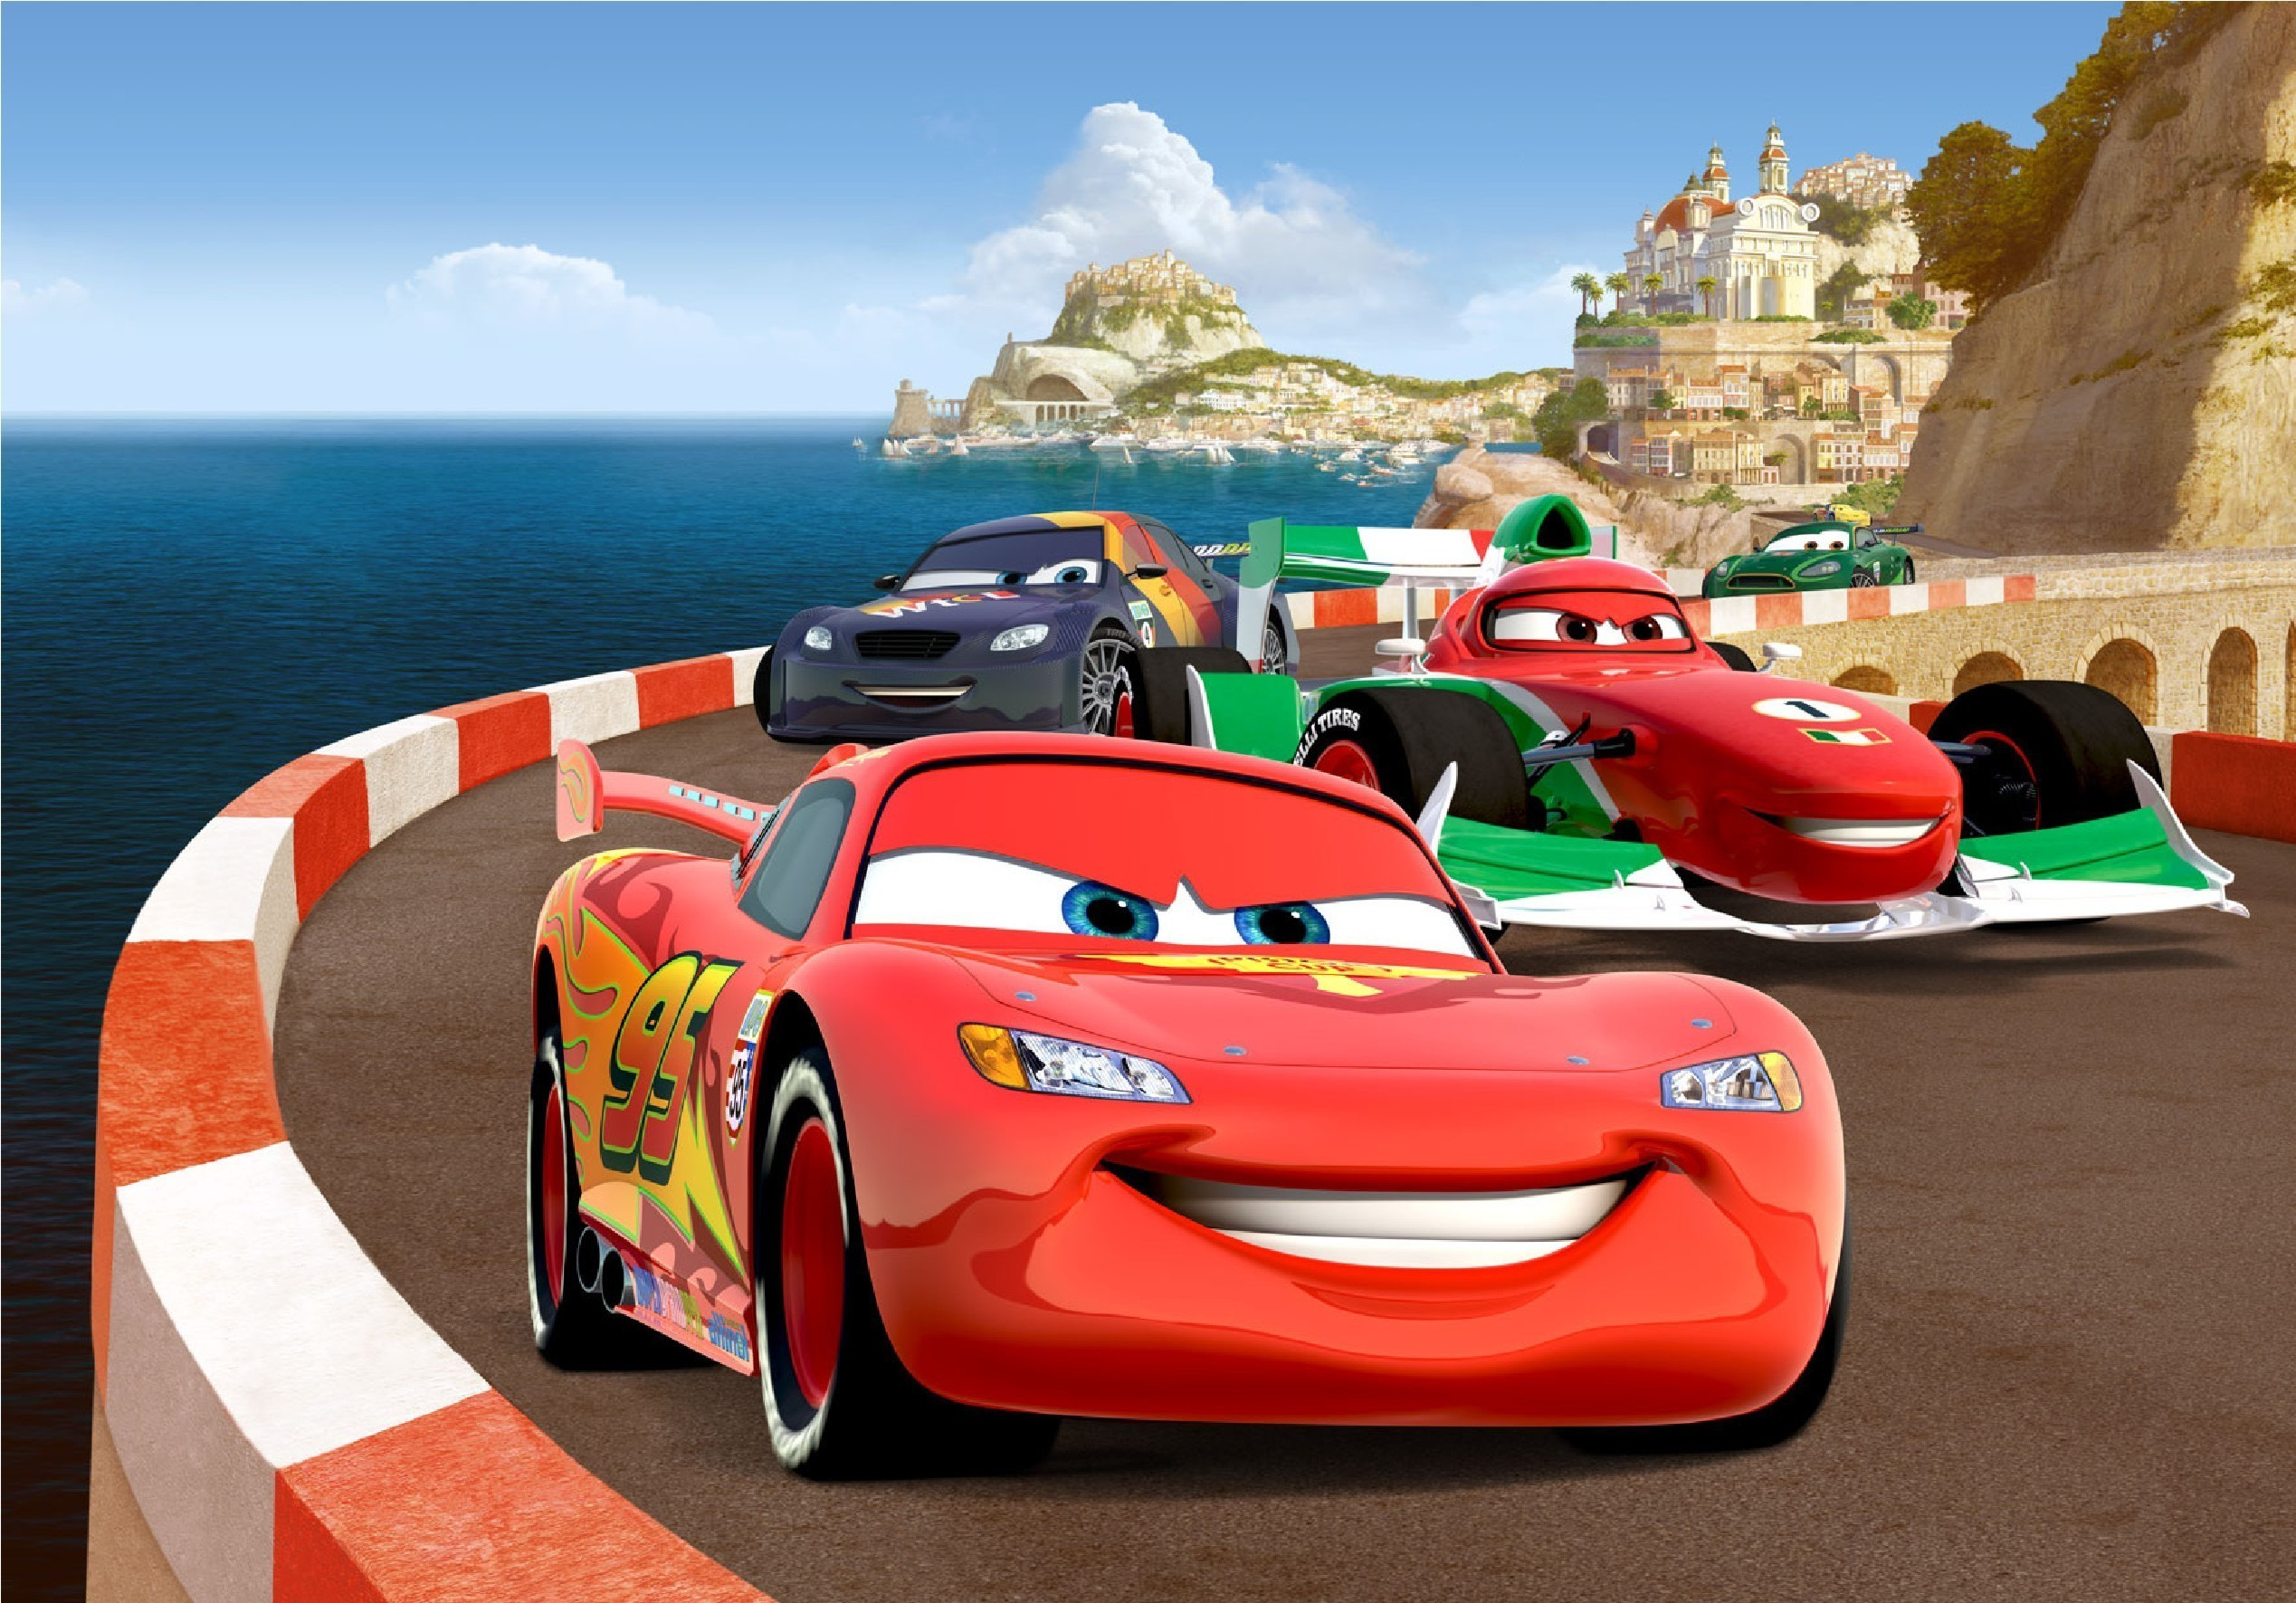 2537x1771 - Wallpaper Cars Cartoon 44